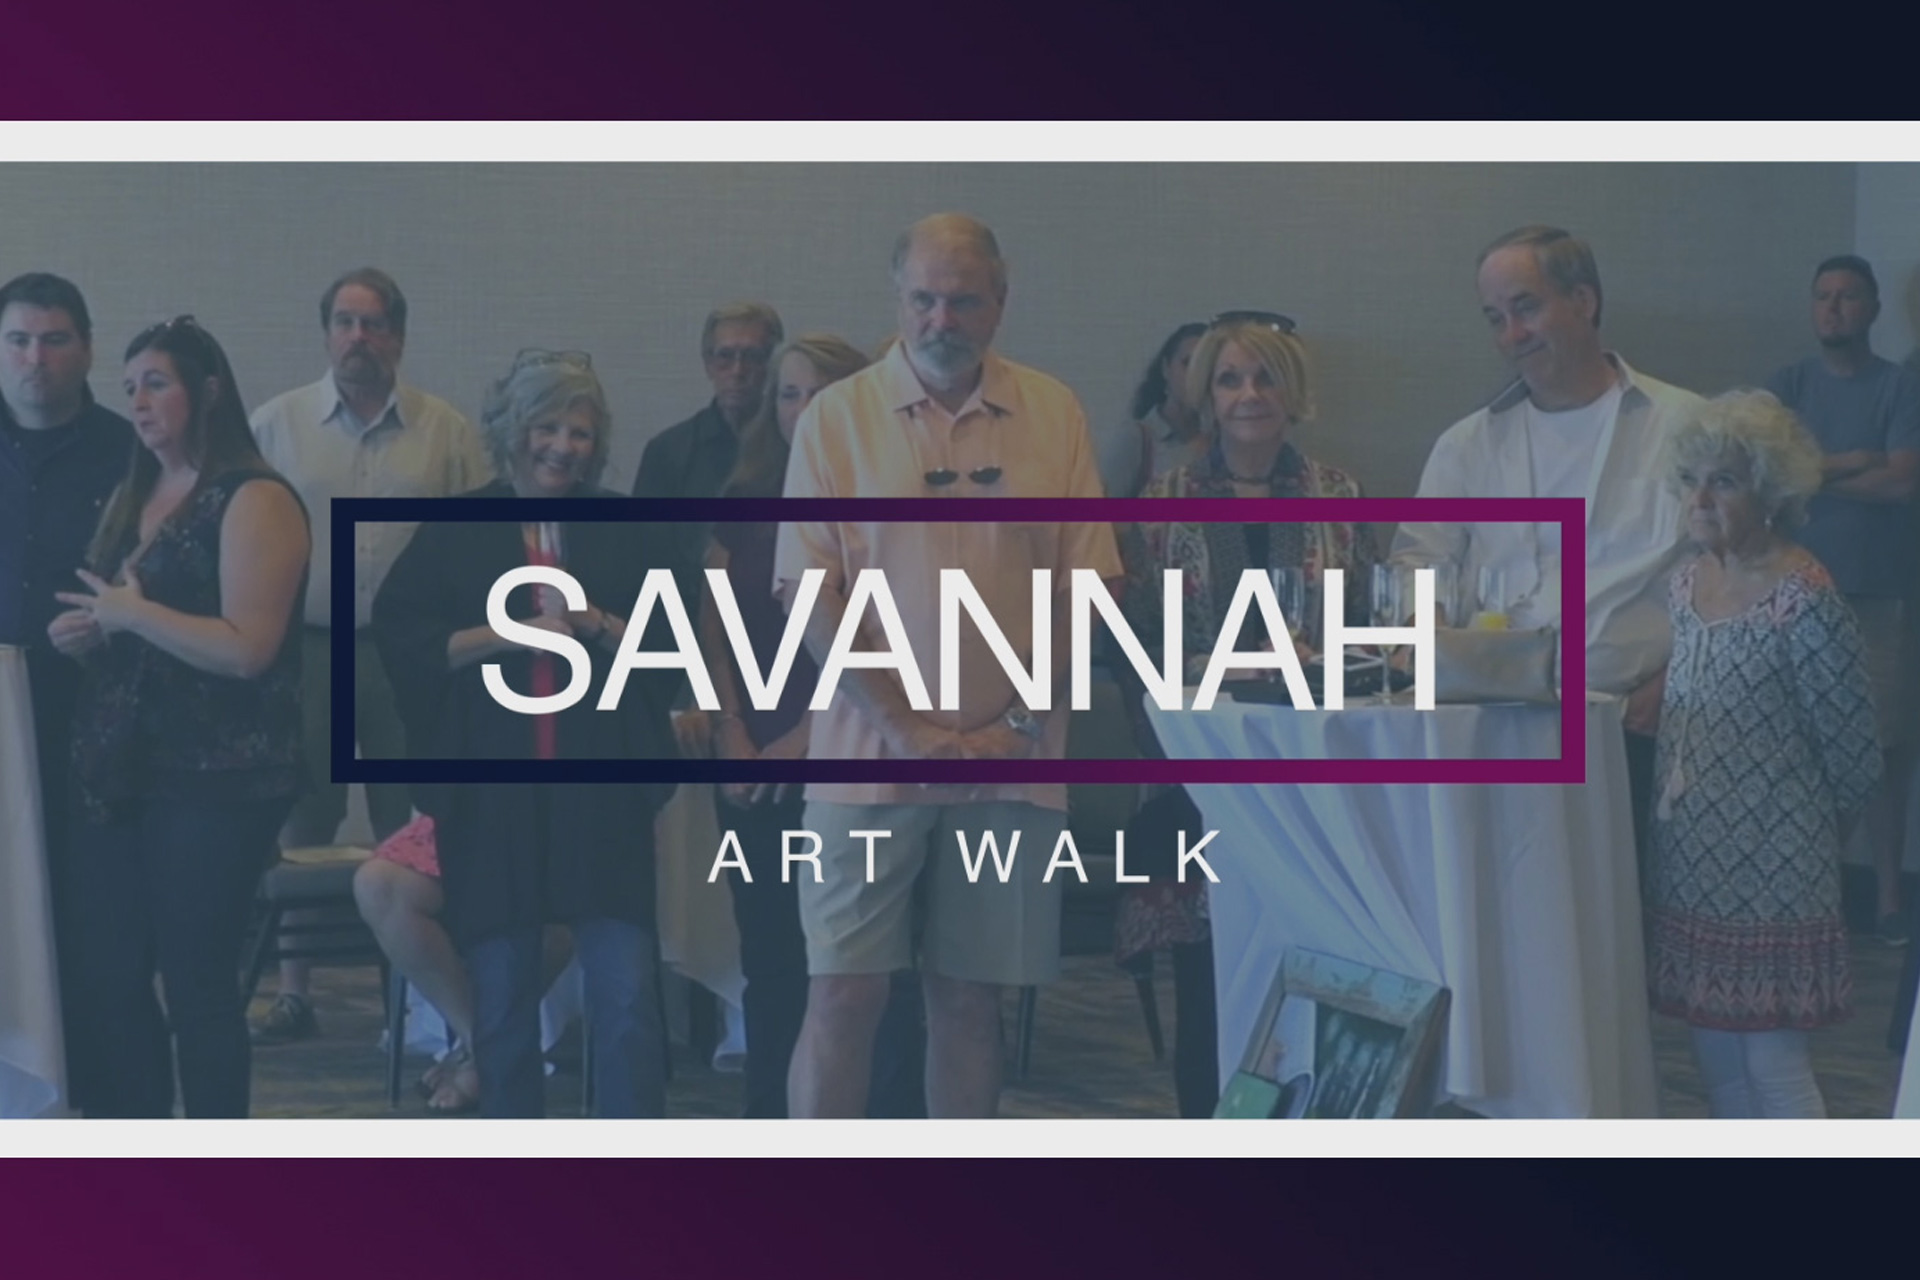 savannah-art-walk-event.jpg